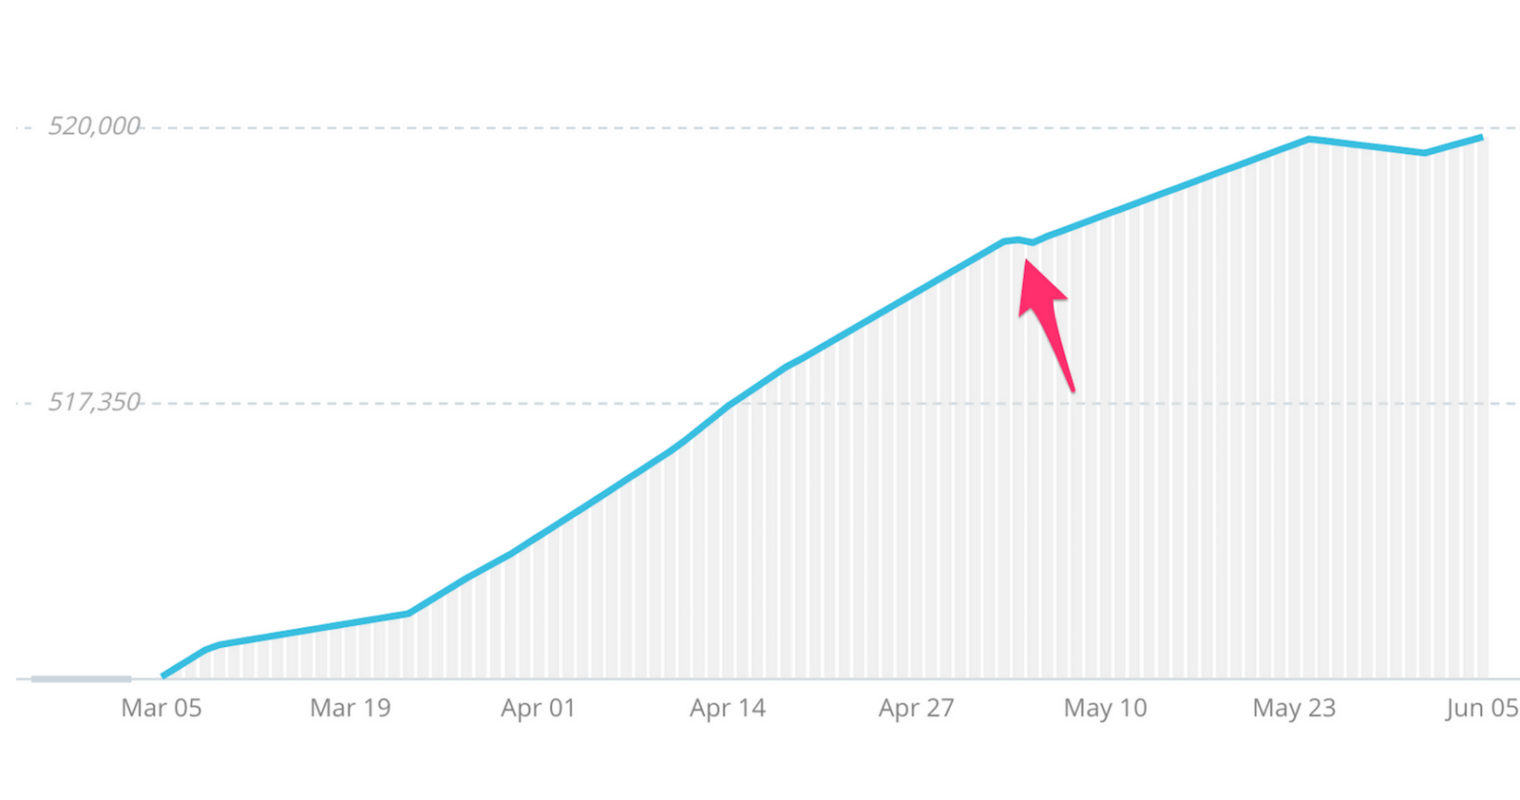 Is Twitter Follower Growth Slowing? [New Data]